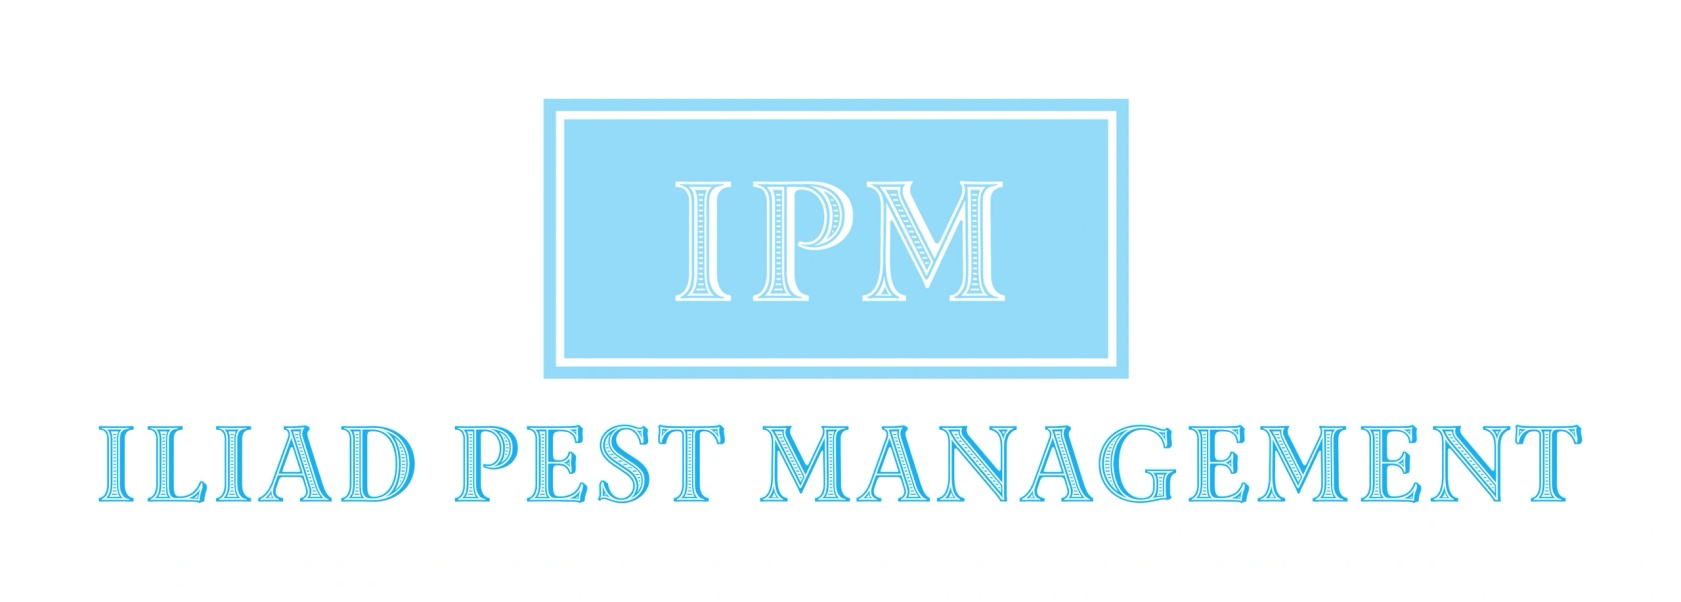 ILIAD PEST MANAGEMENT